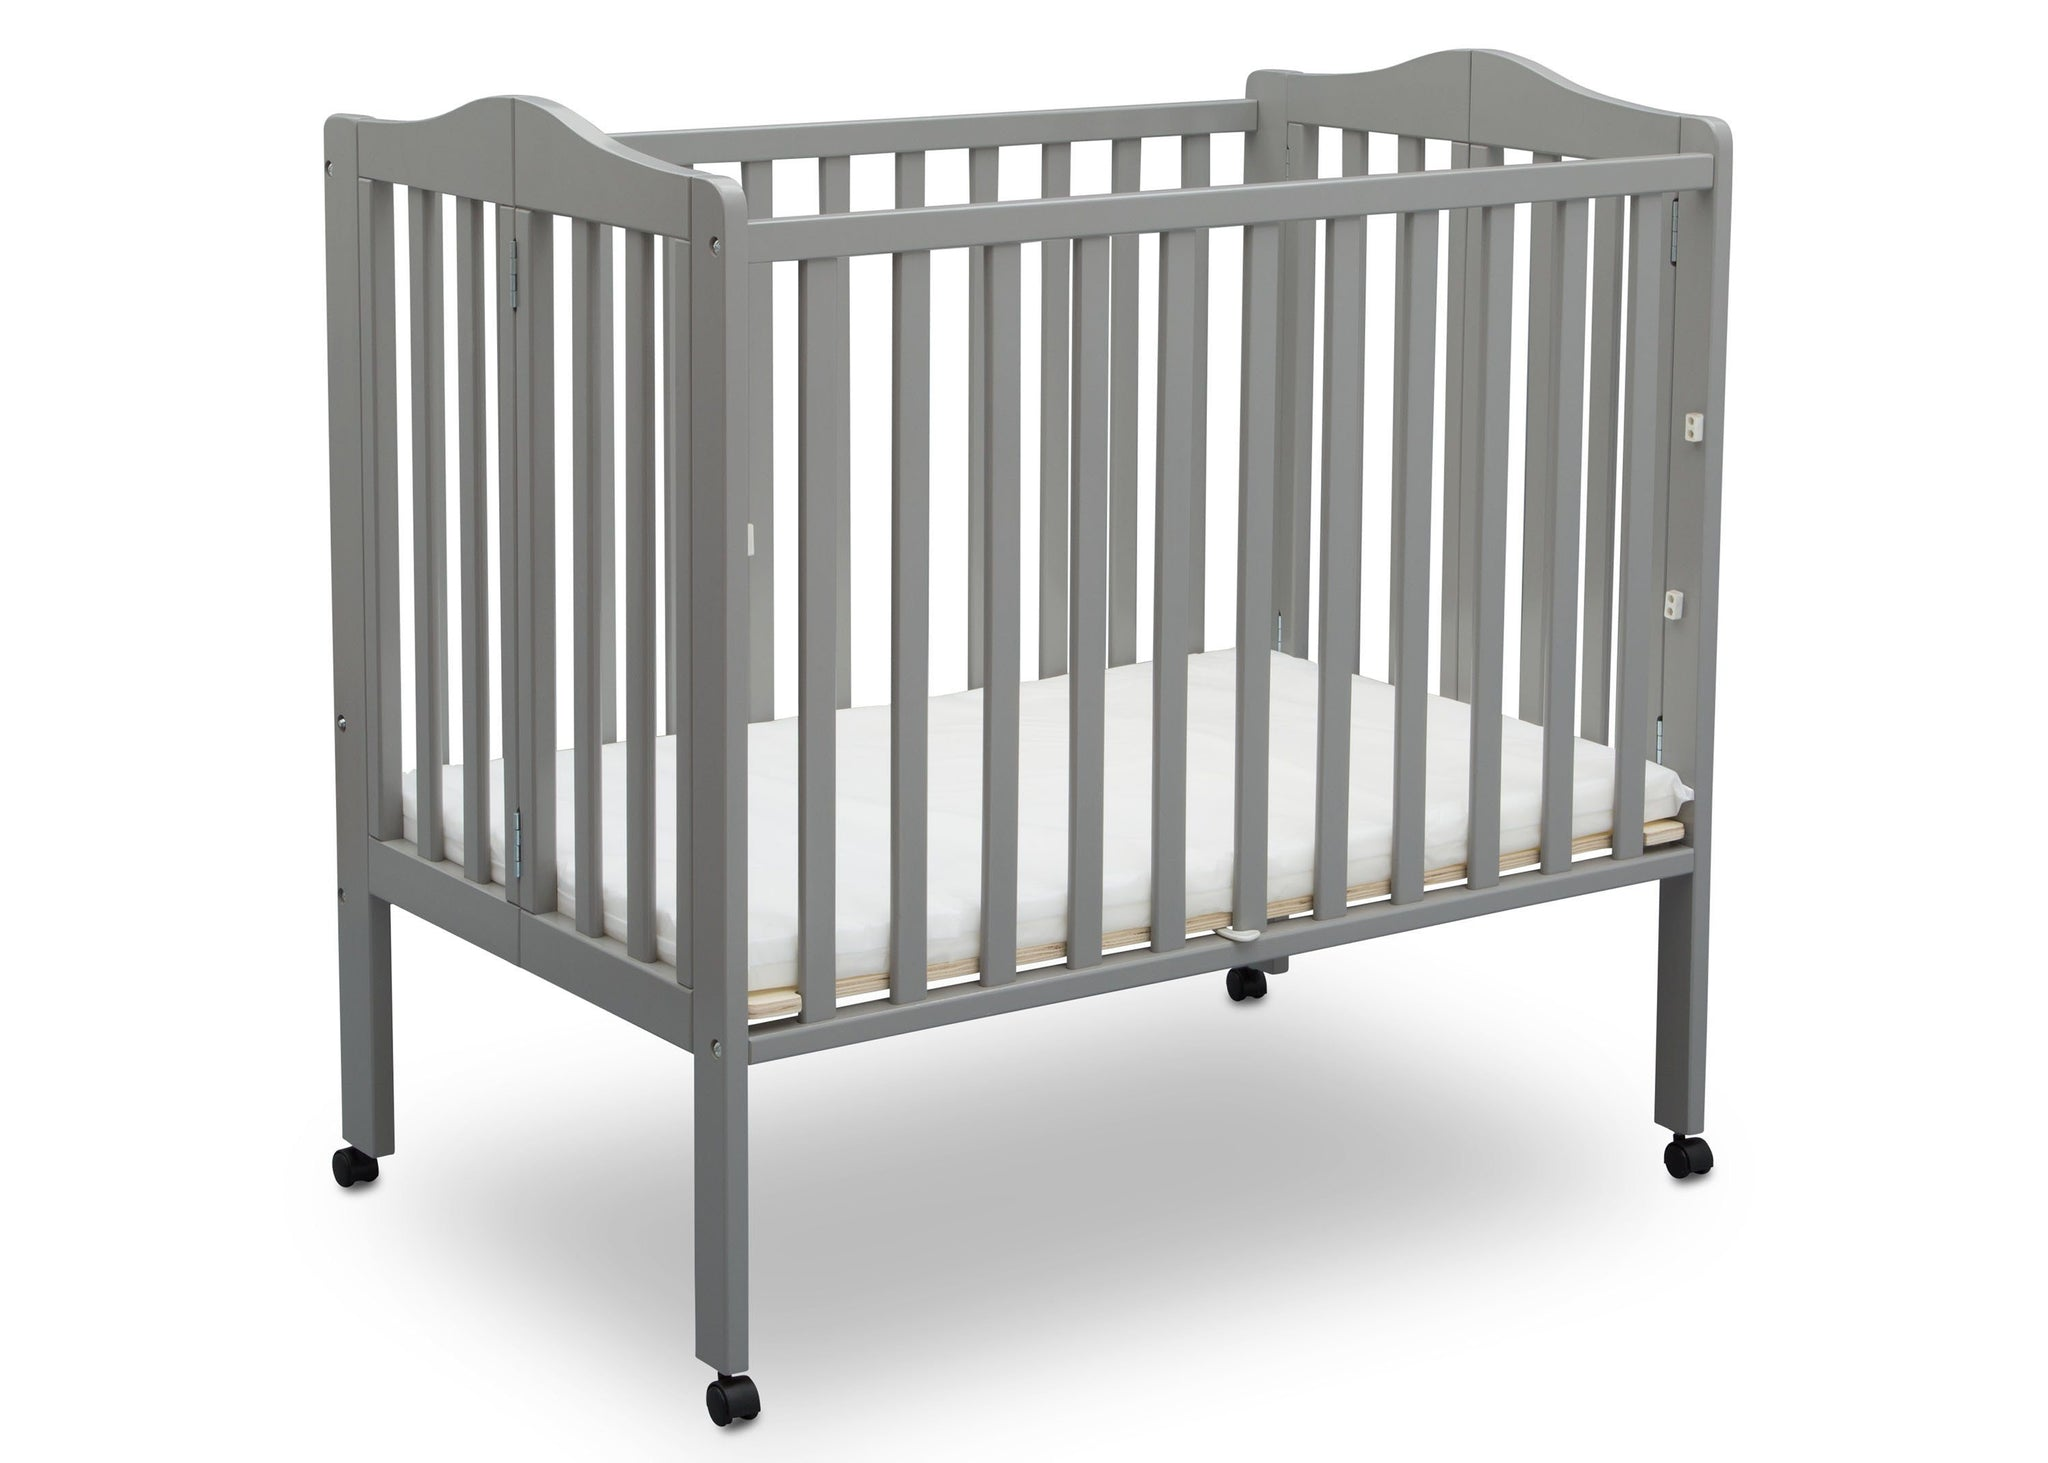 Delta Children Grey (026) Portable Crib, Angle Crib View 1 d4d